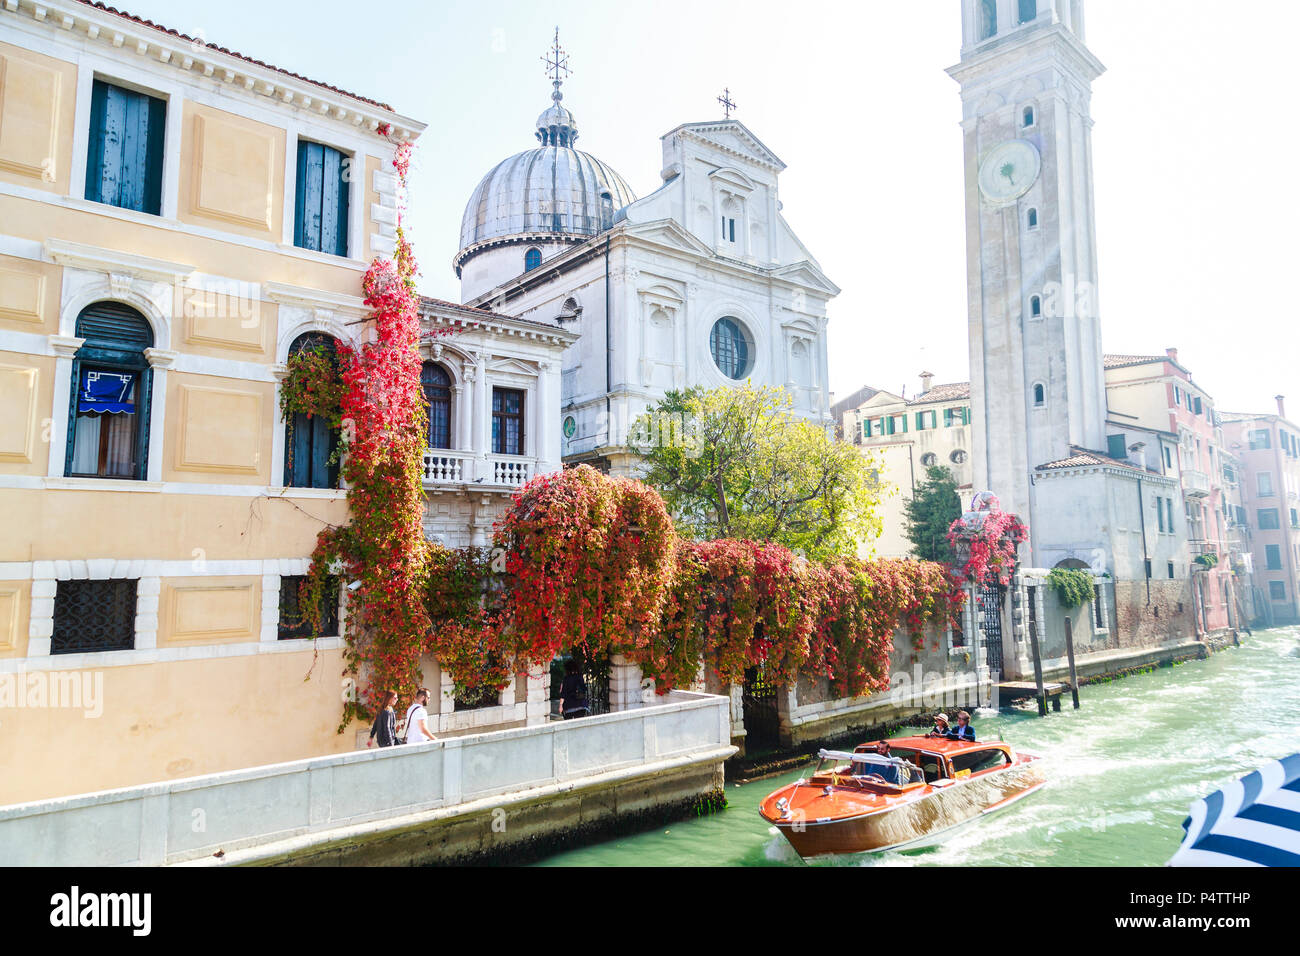 Classic motorboat with two standing tourists passing Chiesa San Giorgio (Greek Church) on Rio del Greci in bright sunshine and colors, Venice, Italy. - Stock Image